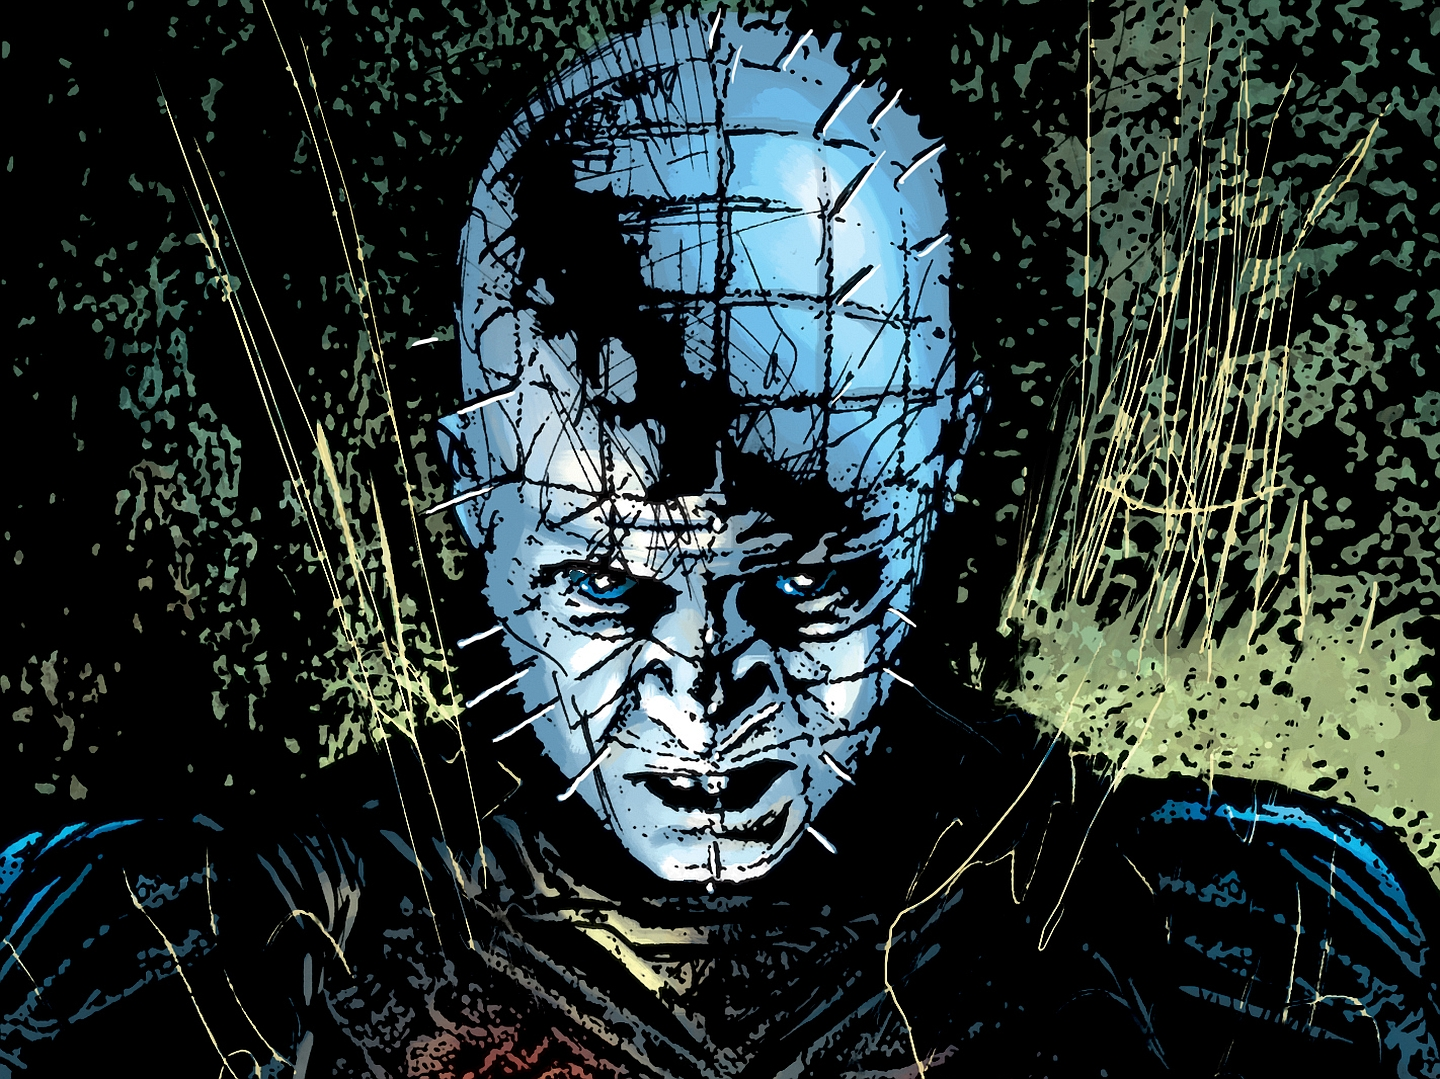 Wallpaper Quotes Iphone 6 Plus Hellraiser Wallpaper And Background Image 1440x1079 Id